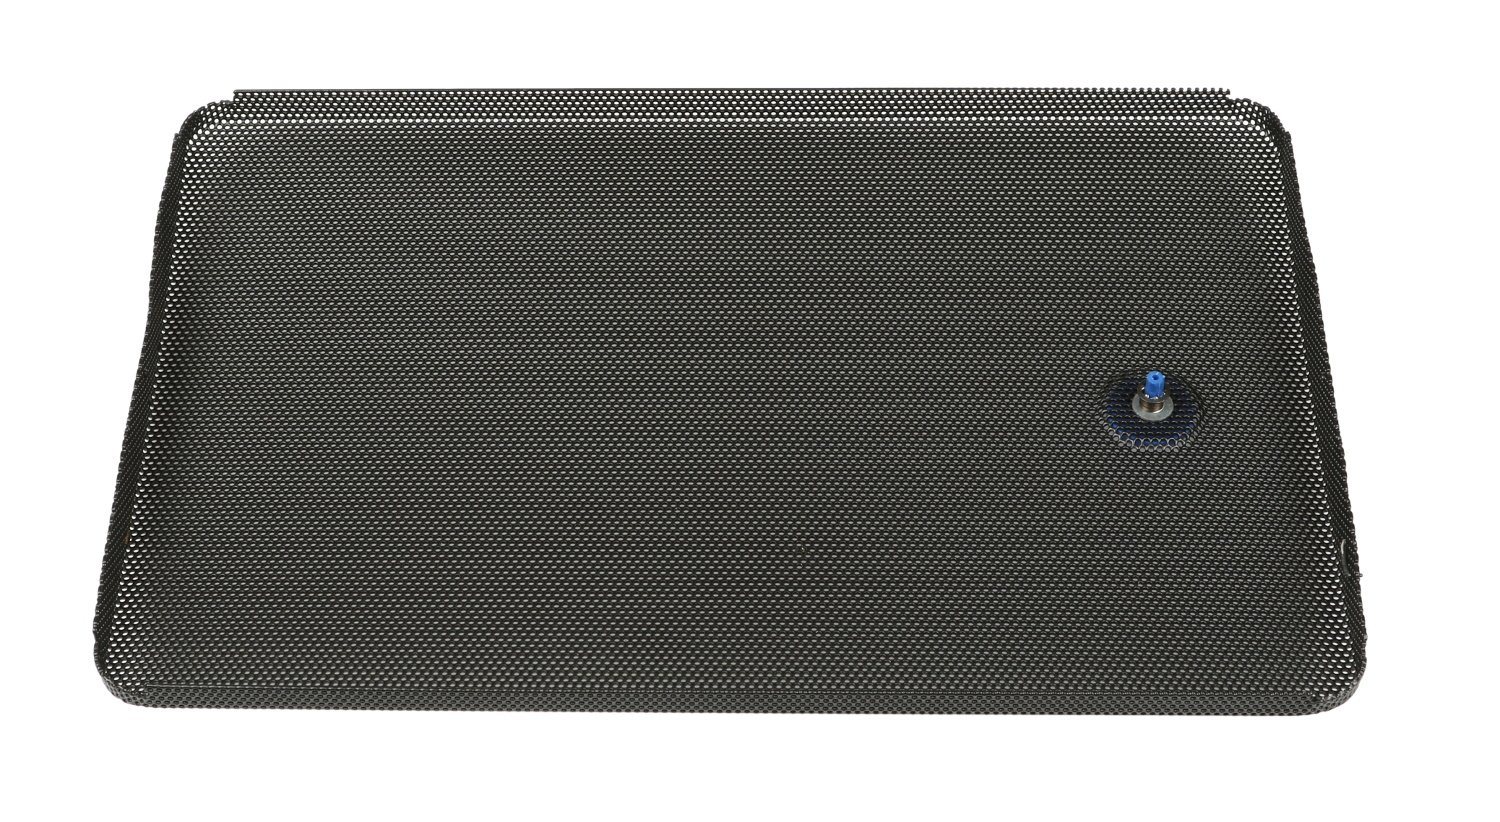 Atlas Sound SM52 GRILL-B Black Grille for SM52 SM52 GRILL-B